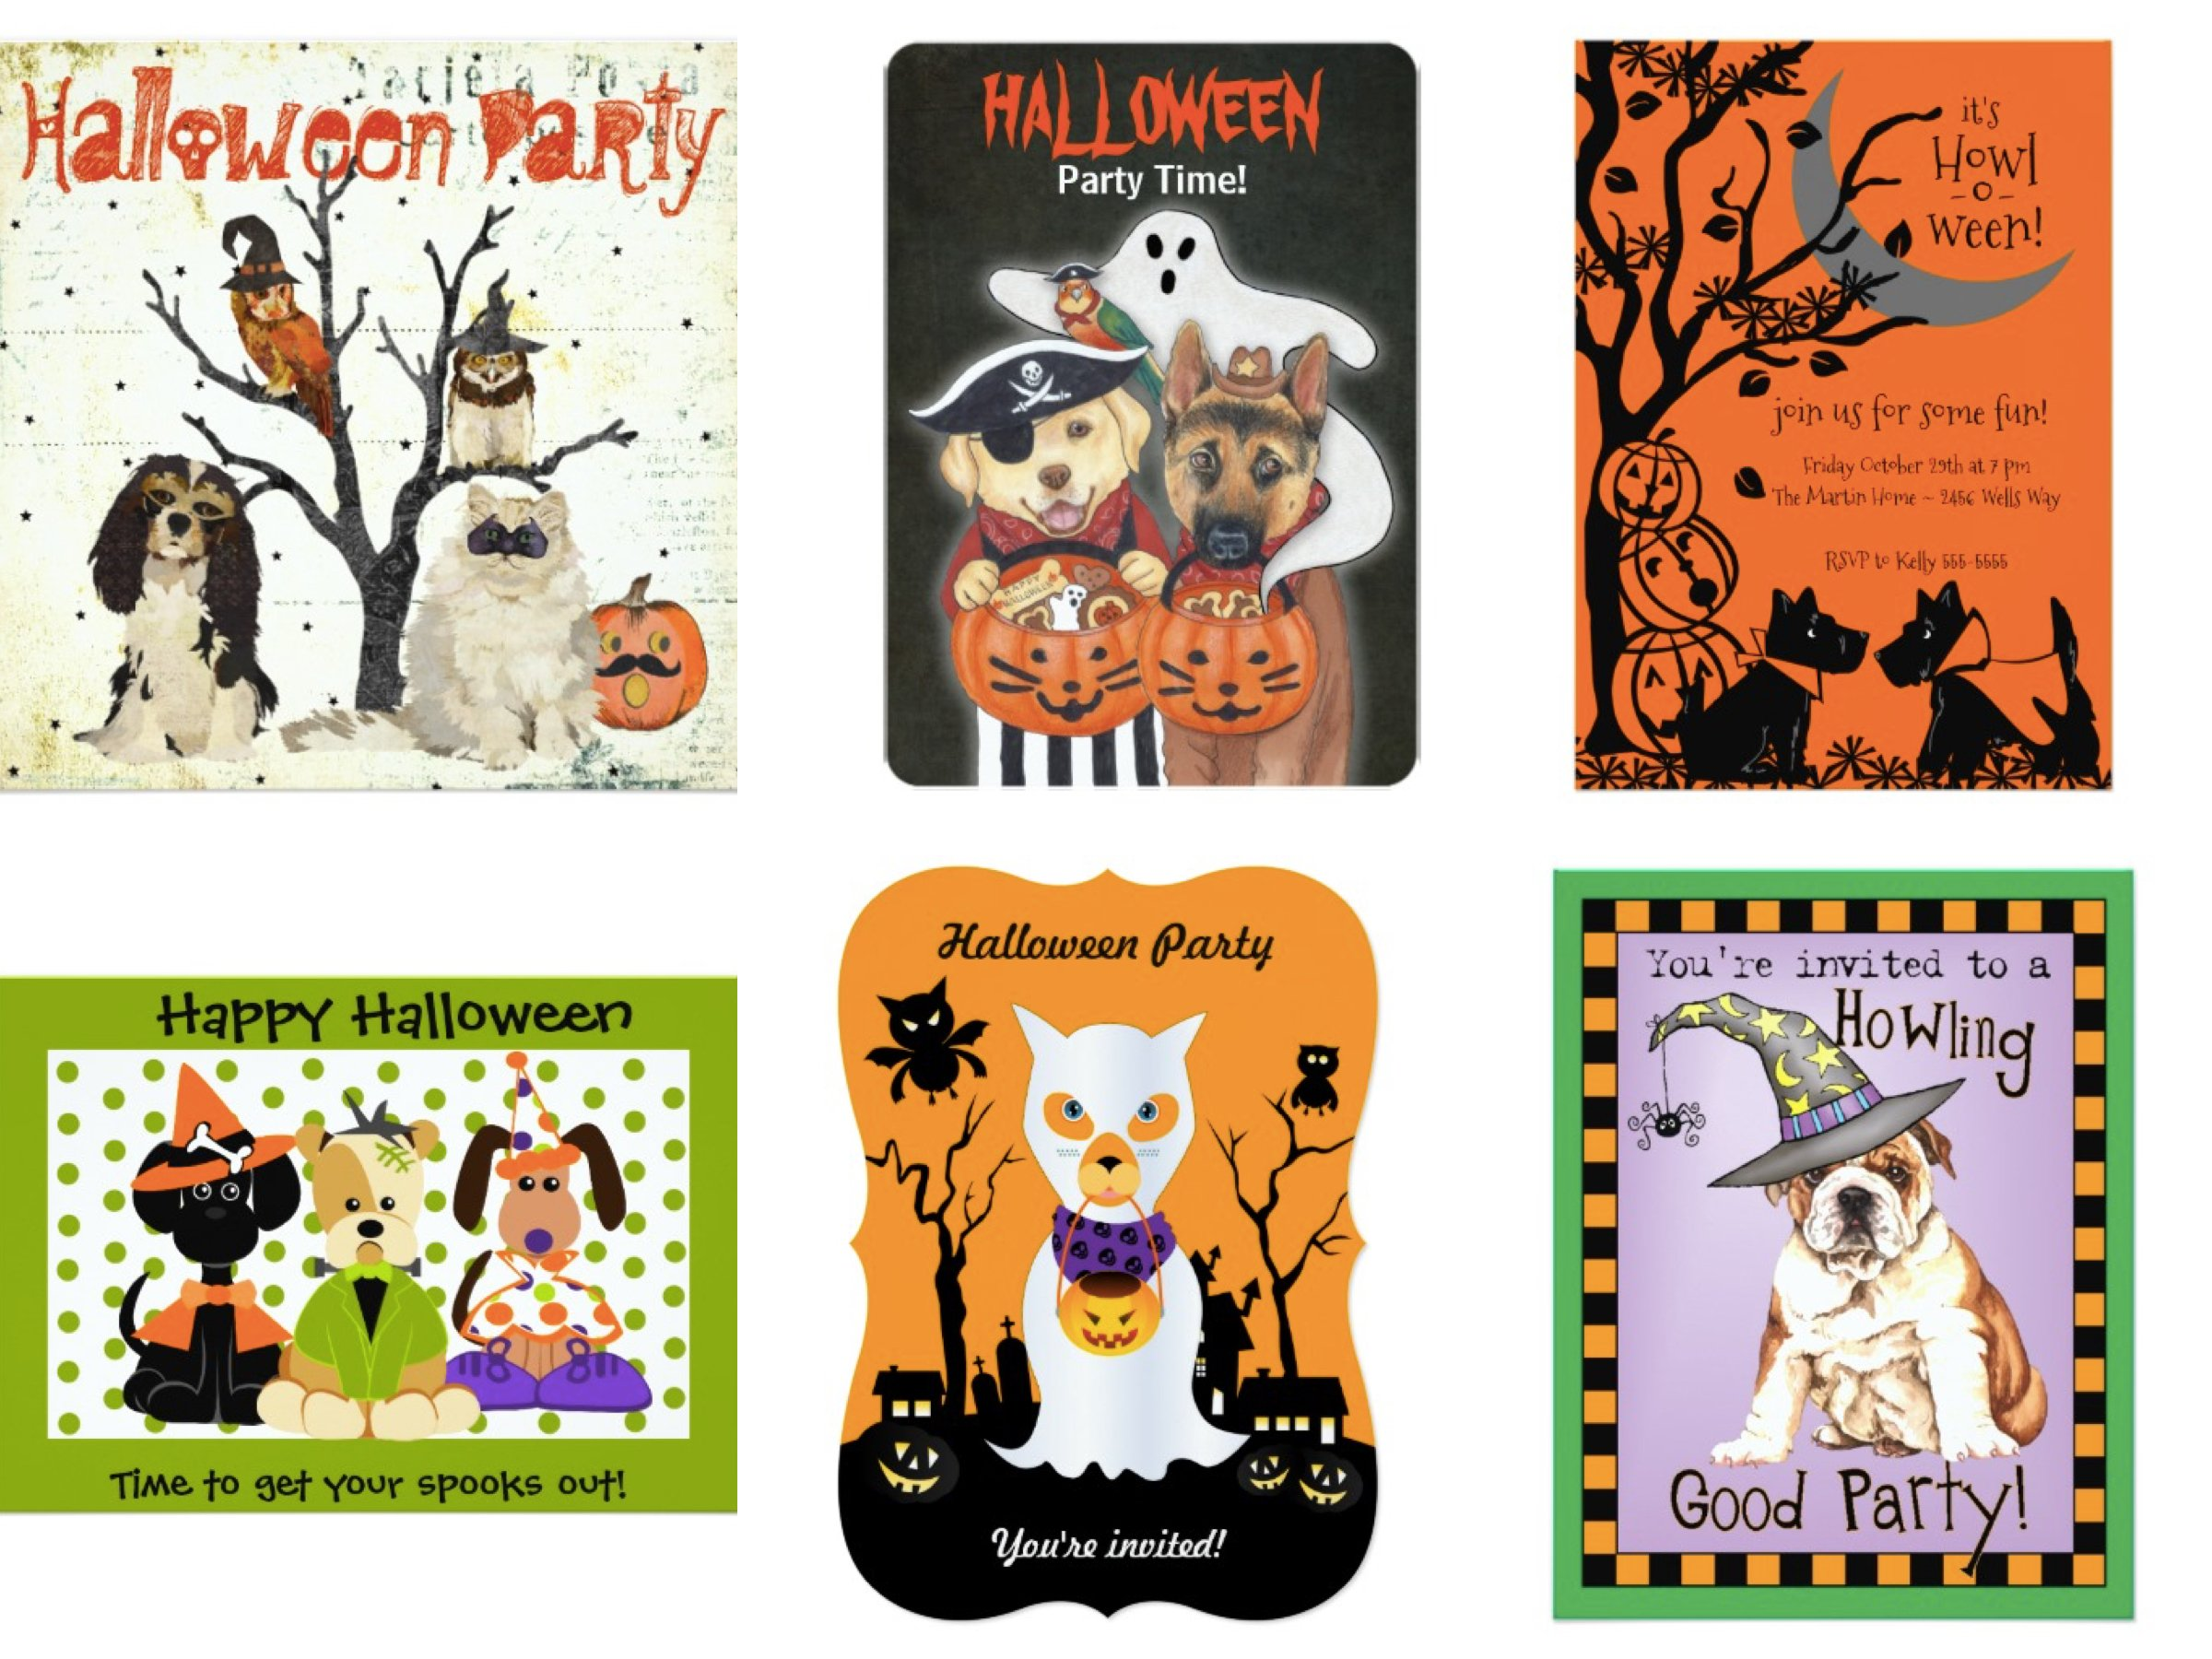 Howl-O-ween Bring Your Pet Halloween Party Invitations